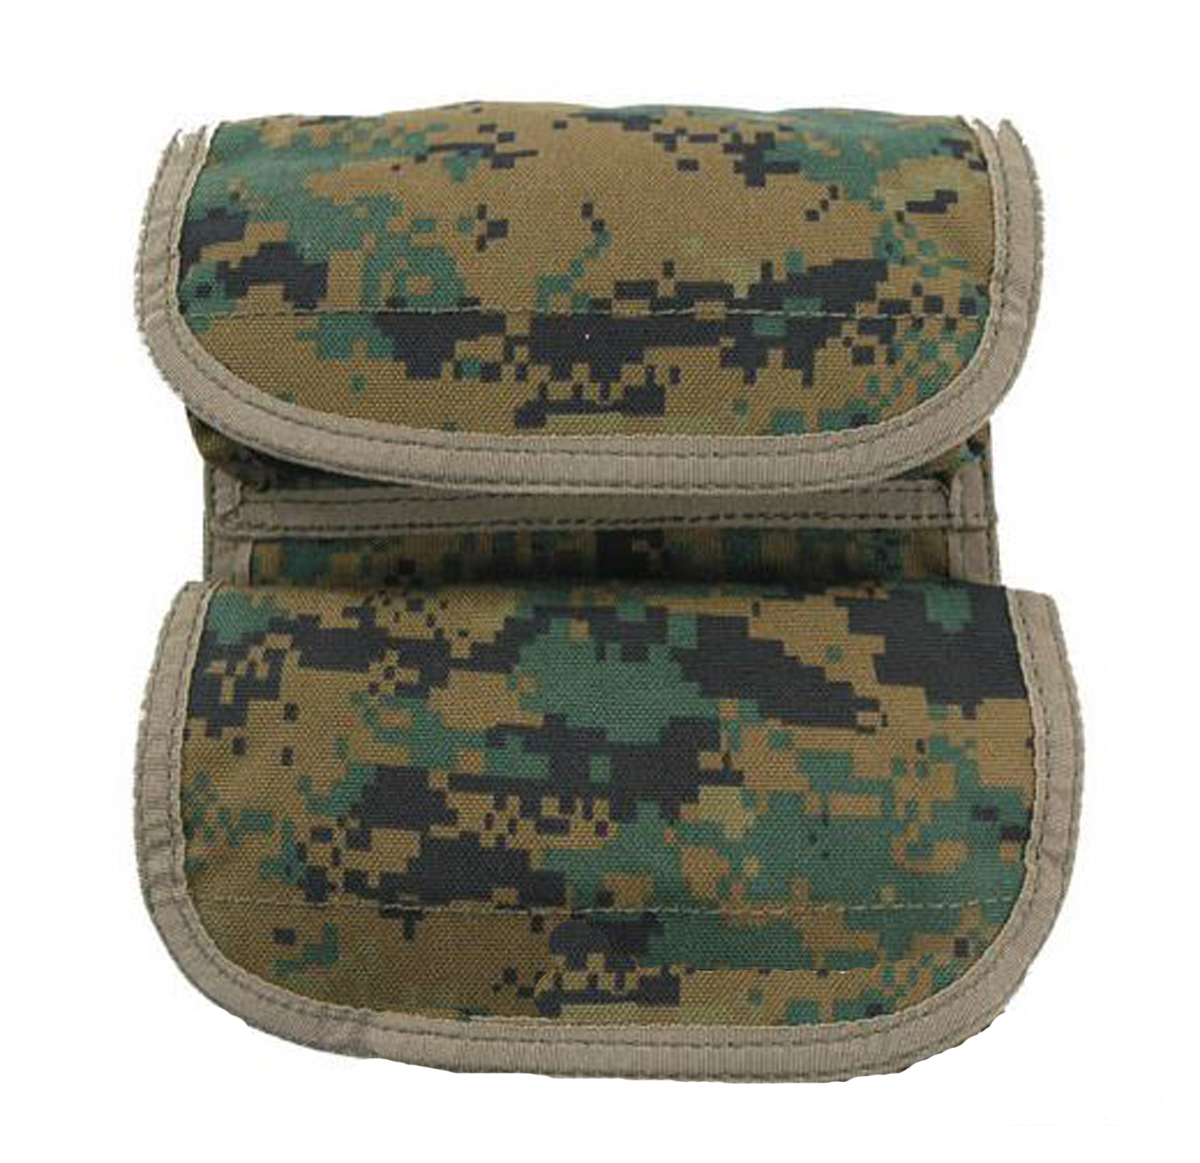 Rap4 Paintball Molle Utility Pouch for Tactical Vest - Digi Camo